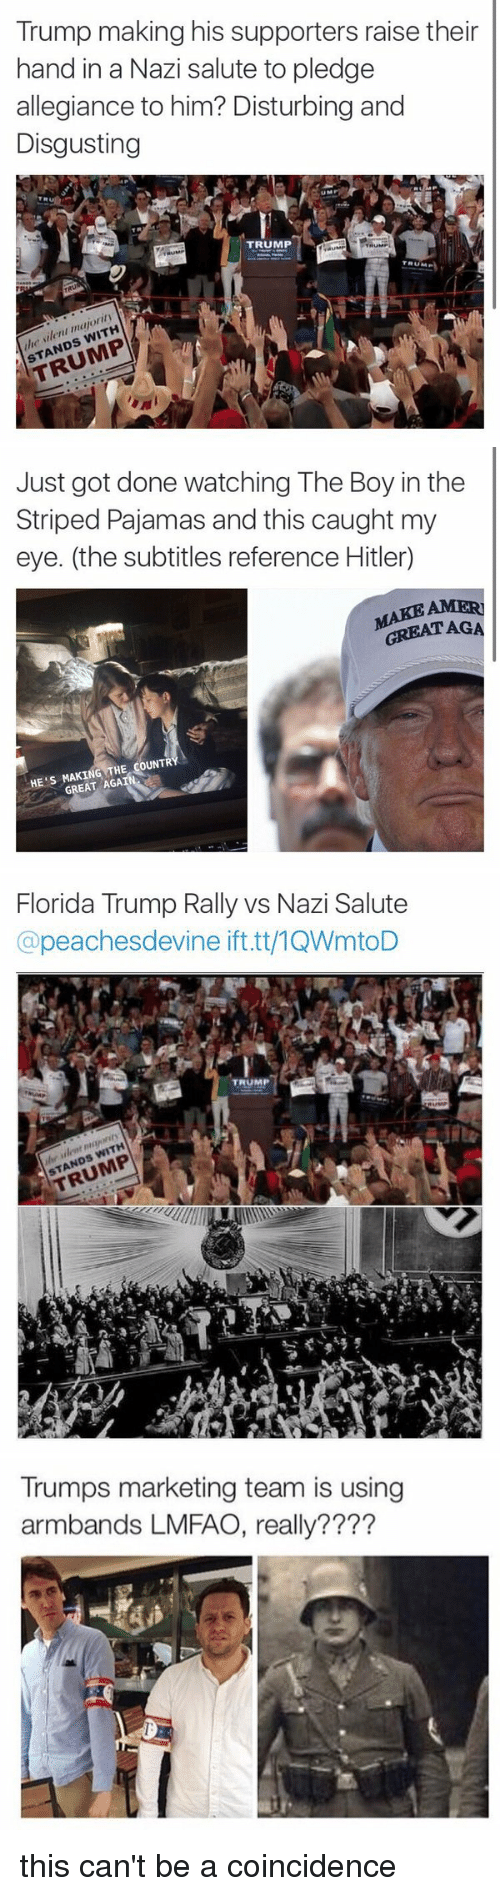 Florida, Hitler, and Trump: Trump making his supporters raise their  hand in a Nazi salute to pledge  allegiance to him? Disturbing and  Disgusting  TRUMP  TRUM  WITH  STANDS  Just got done watching The Boy in the  Striped Pajamas and this caught my  eye. (the subtitles reference Hitler  GREAT AGA  THE COUNTR  HE S GREAT AGA   Florida Trump Rally vs Nazi Salute  @peaches devine ifttt/1QWmtoD  WITH  STANDS  Trumps marketing team is using  armbands LMFAO, really???? this can't be a coincidence